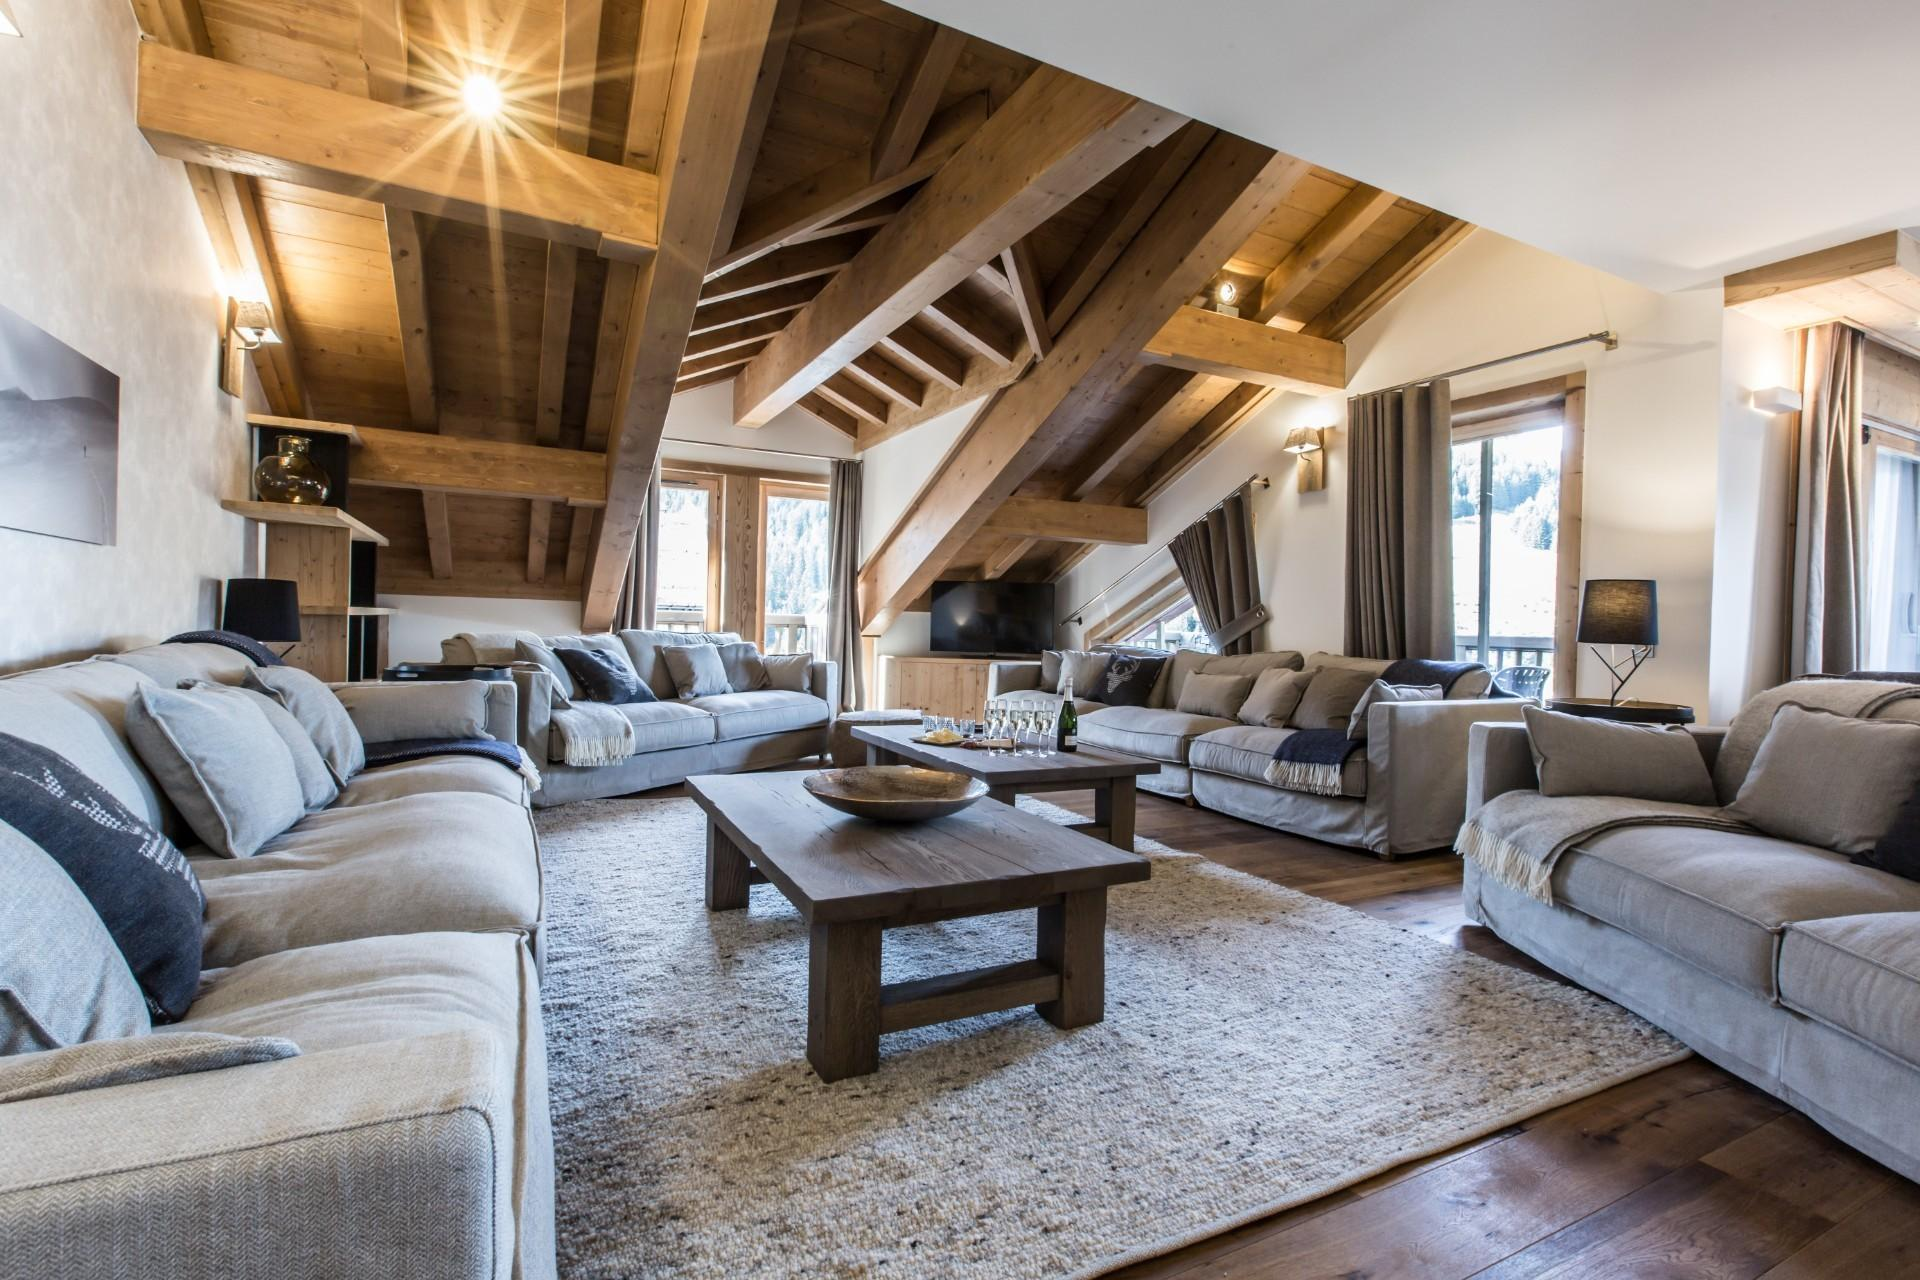 APPARTEMENT PROGRAMME NEUF SKIS AUX PIEDS